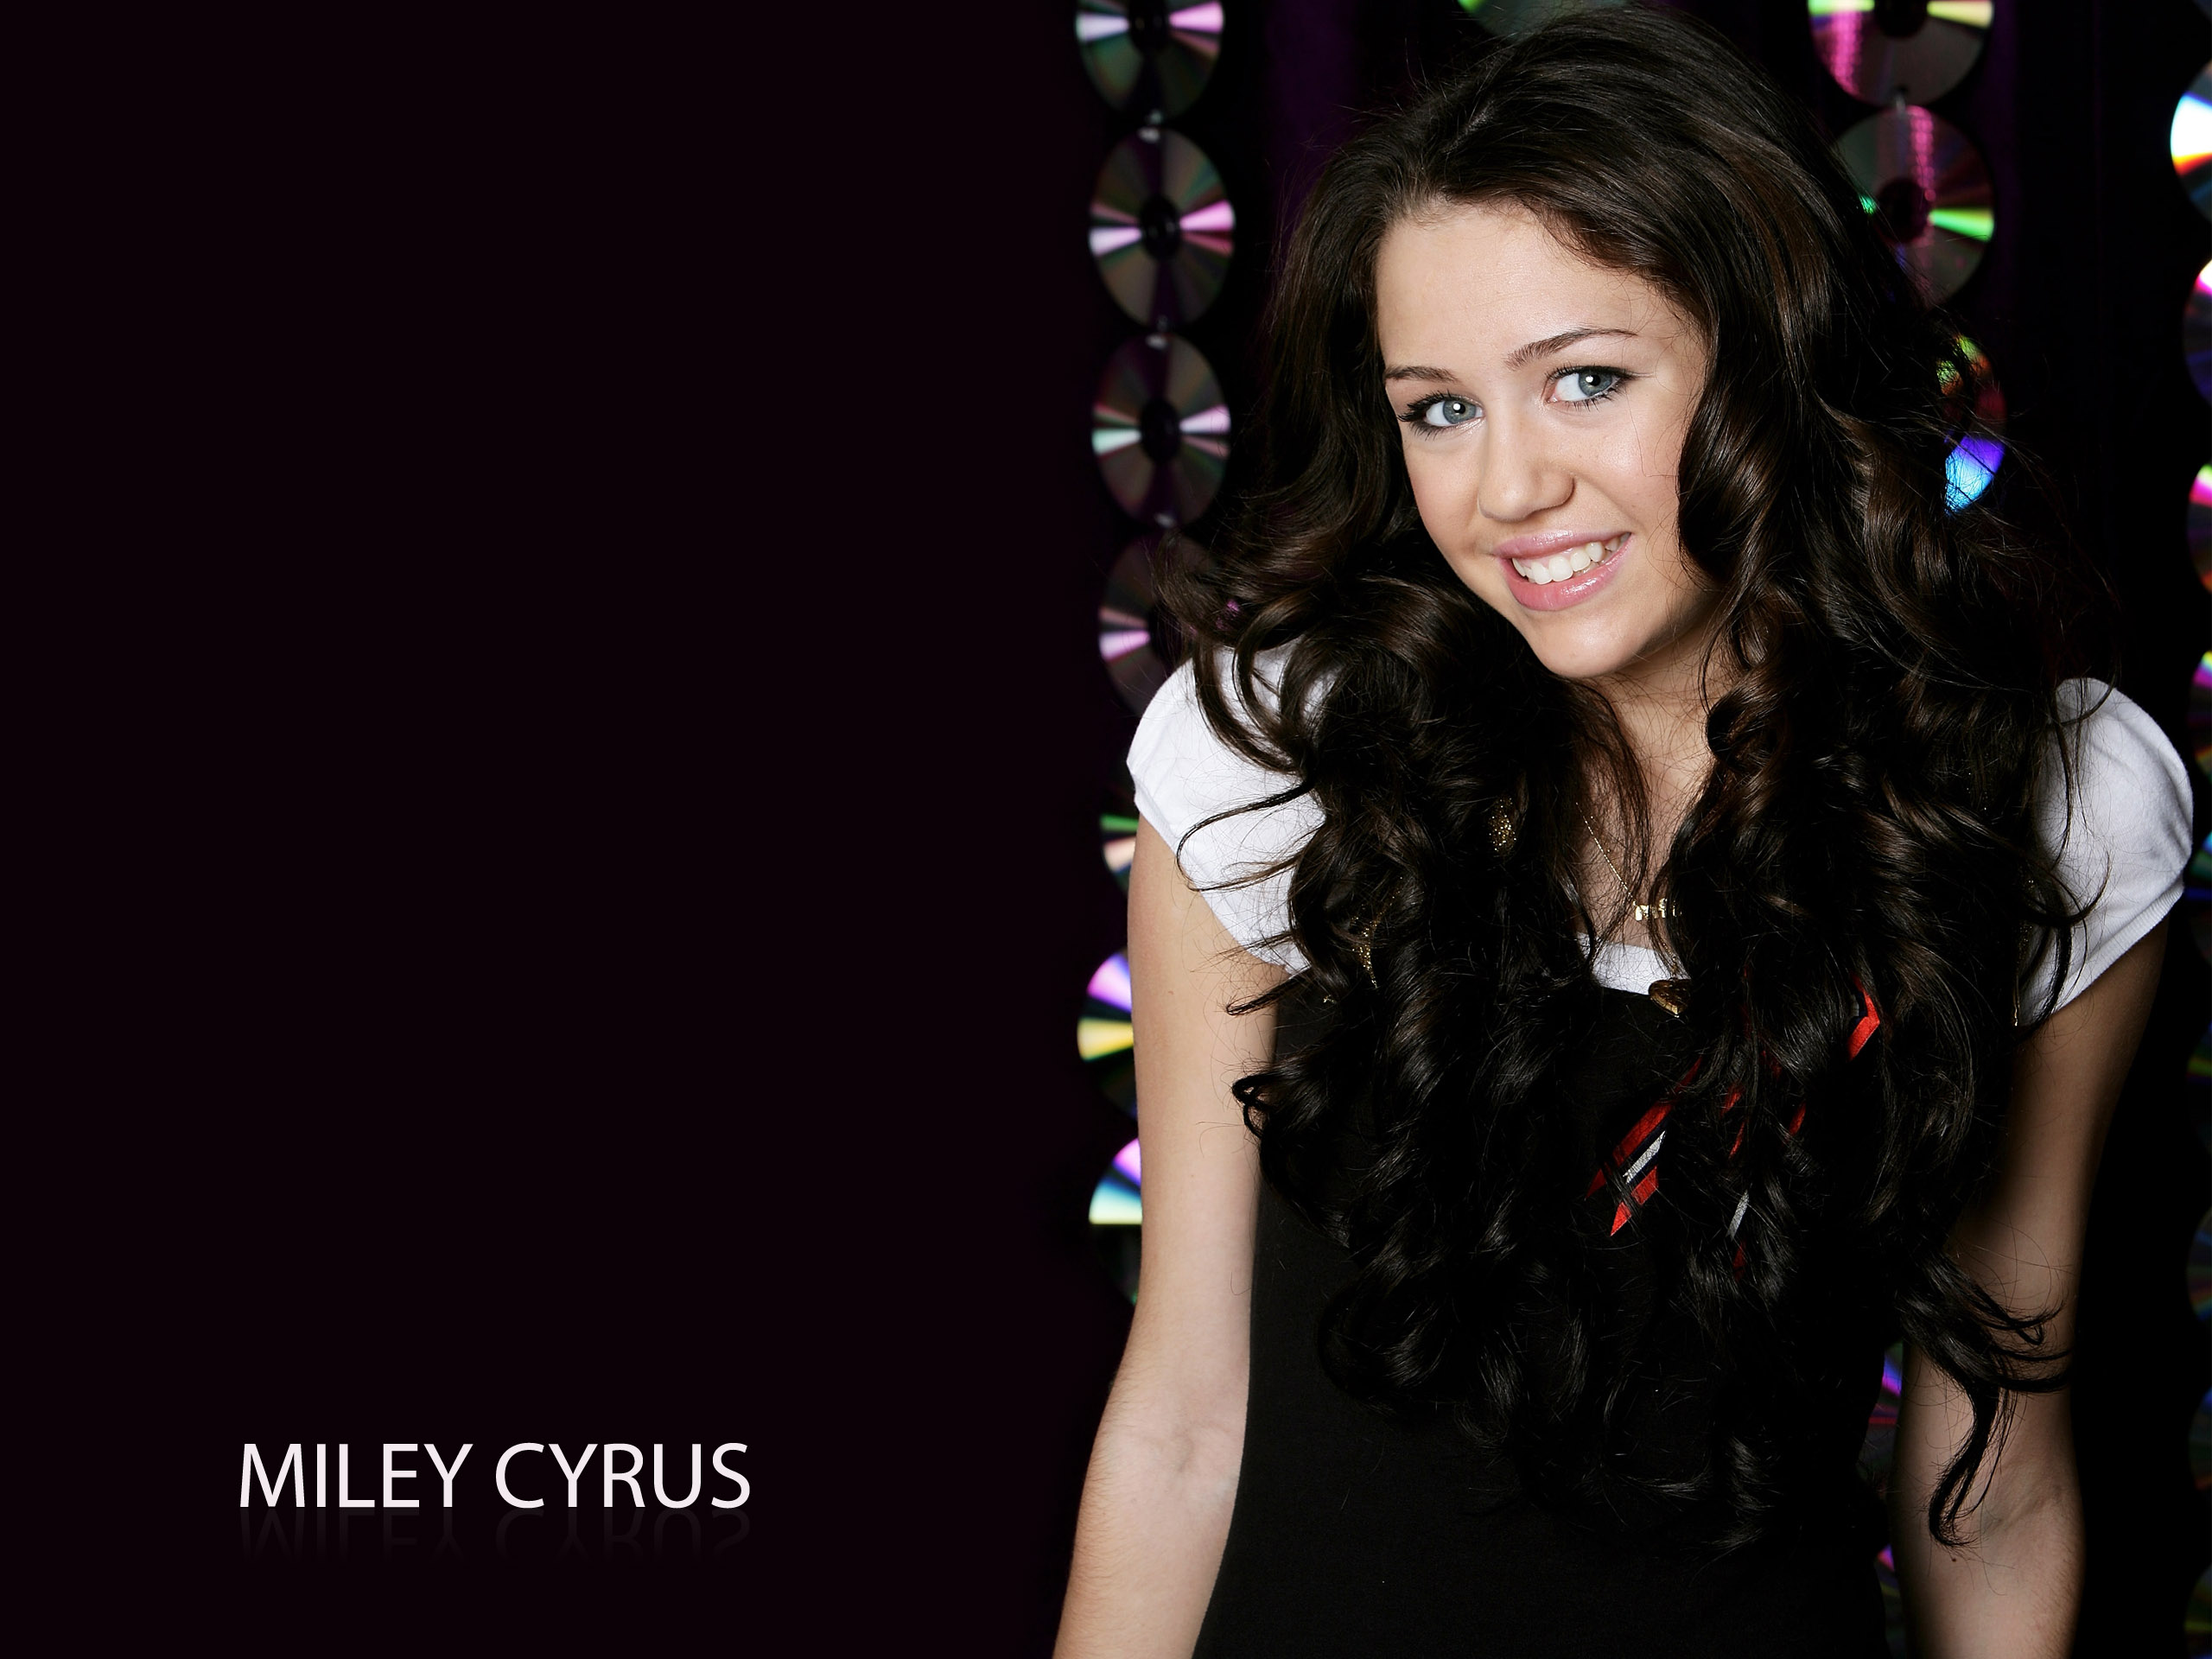 Miley Cyrus 27 4193805 2560x1920 All For Desktop